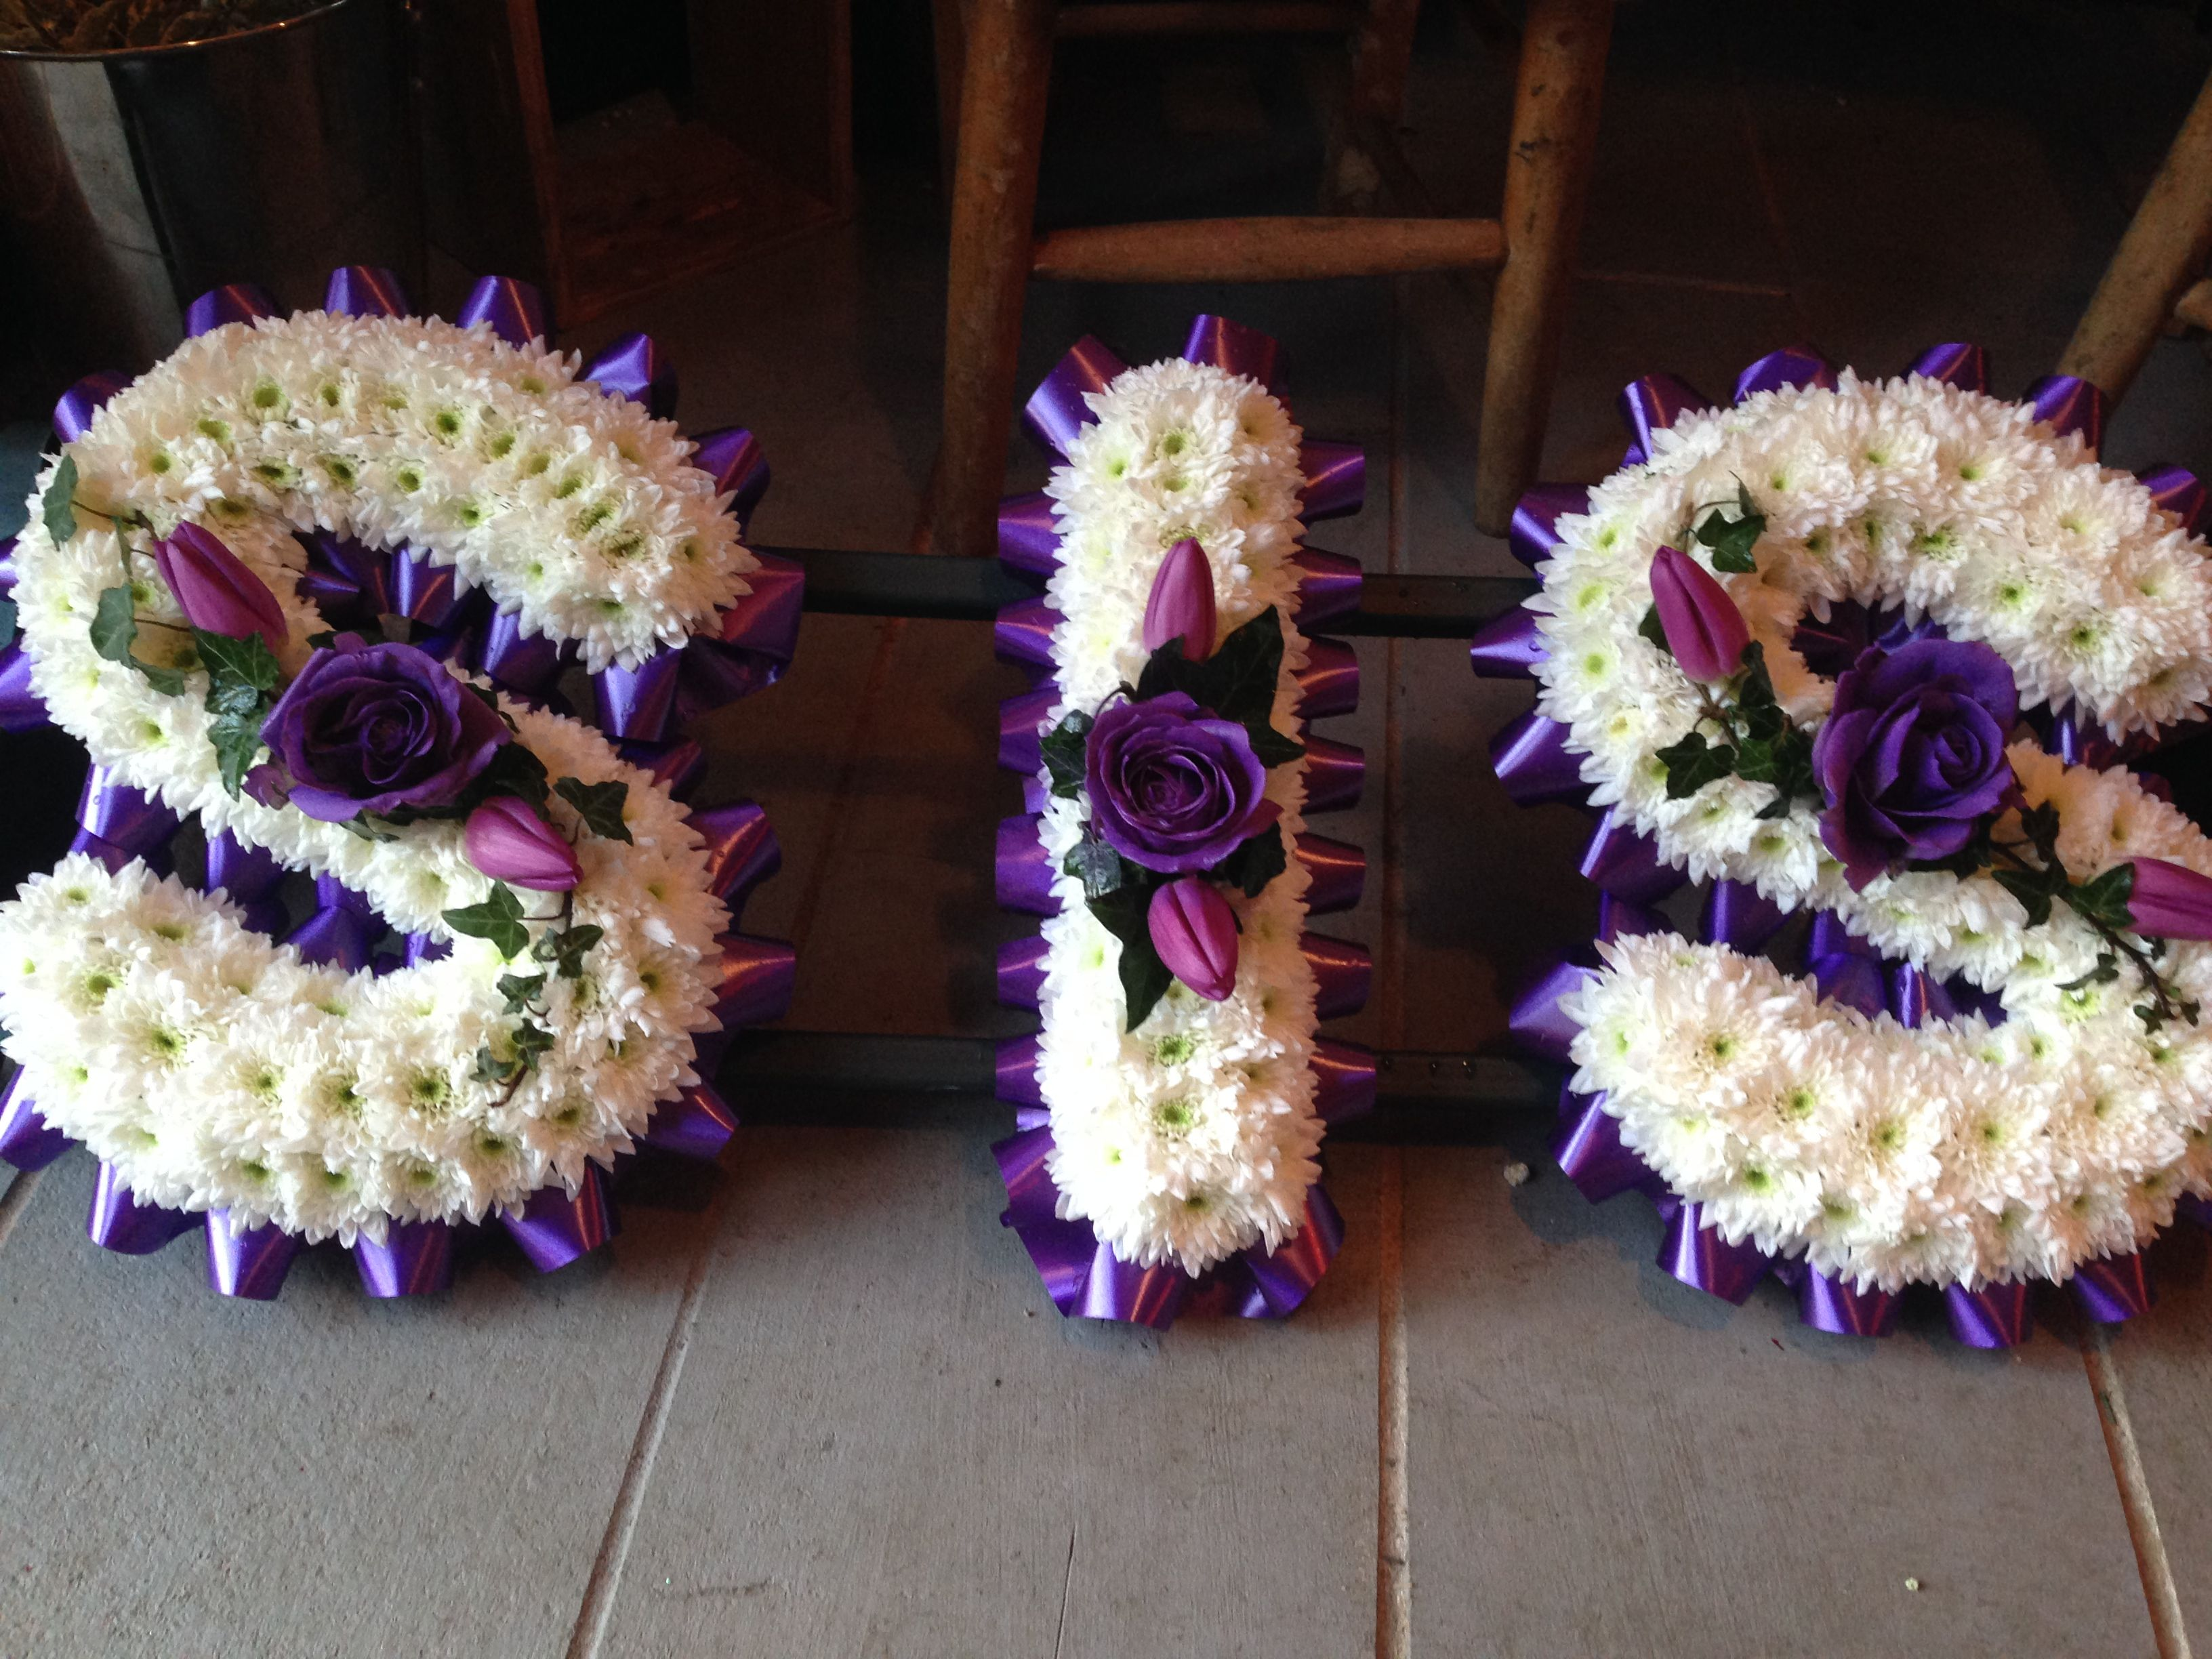 Funeral flowers sis funeral flower letter tribute cadbury purple funeral flowers sis funeral flower letter tribute cadbury purple and white stunning funeral izmirmasajfo Images